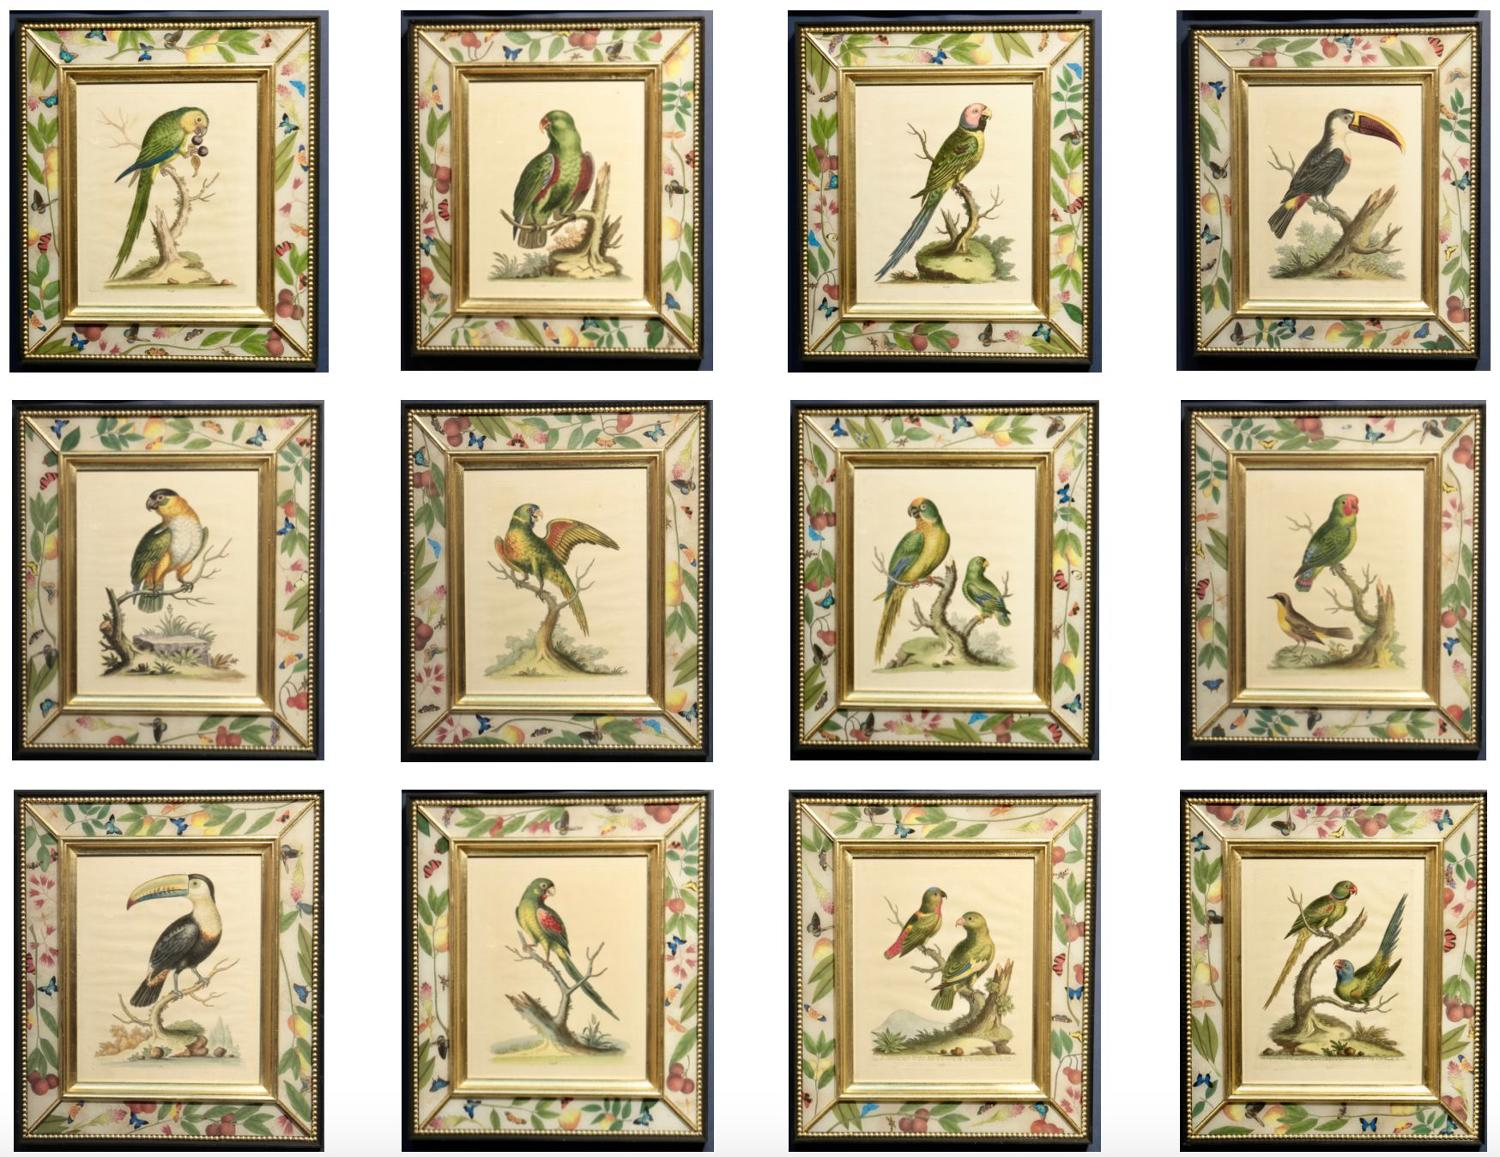 George Edwards 18th century etchings of parrots.